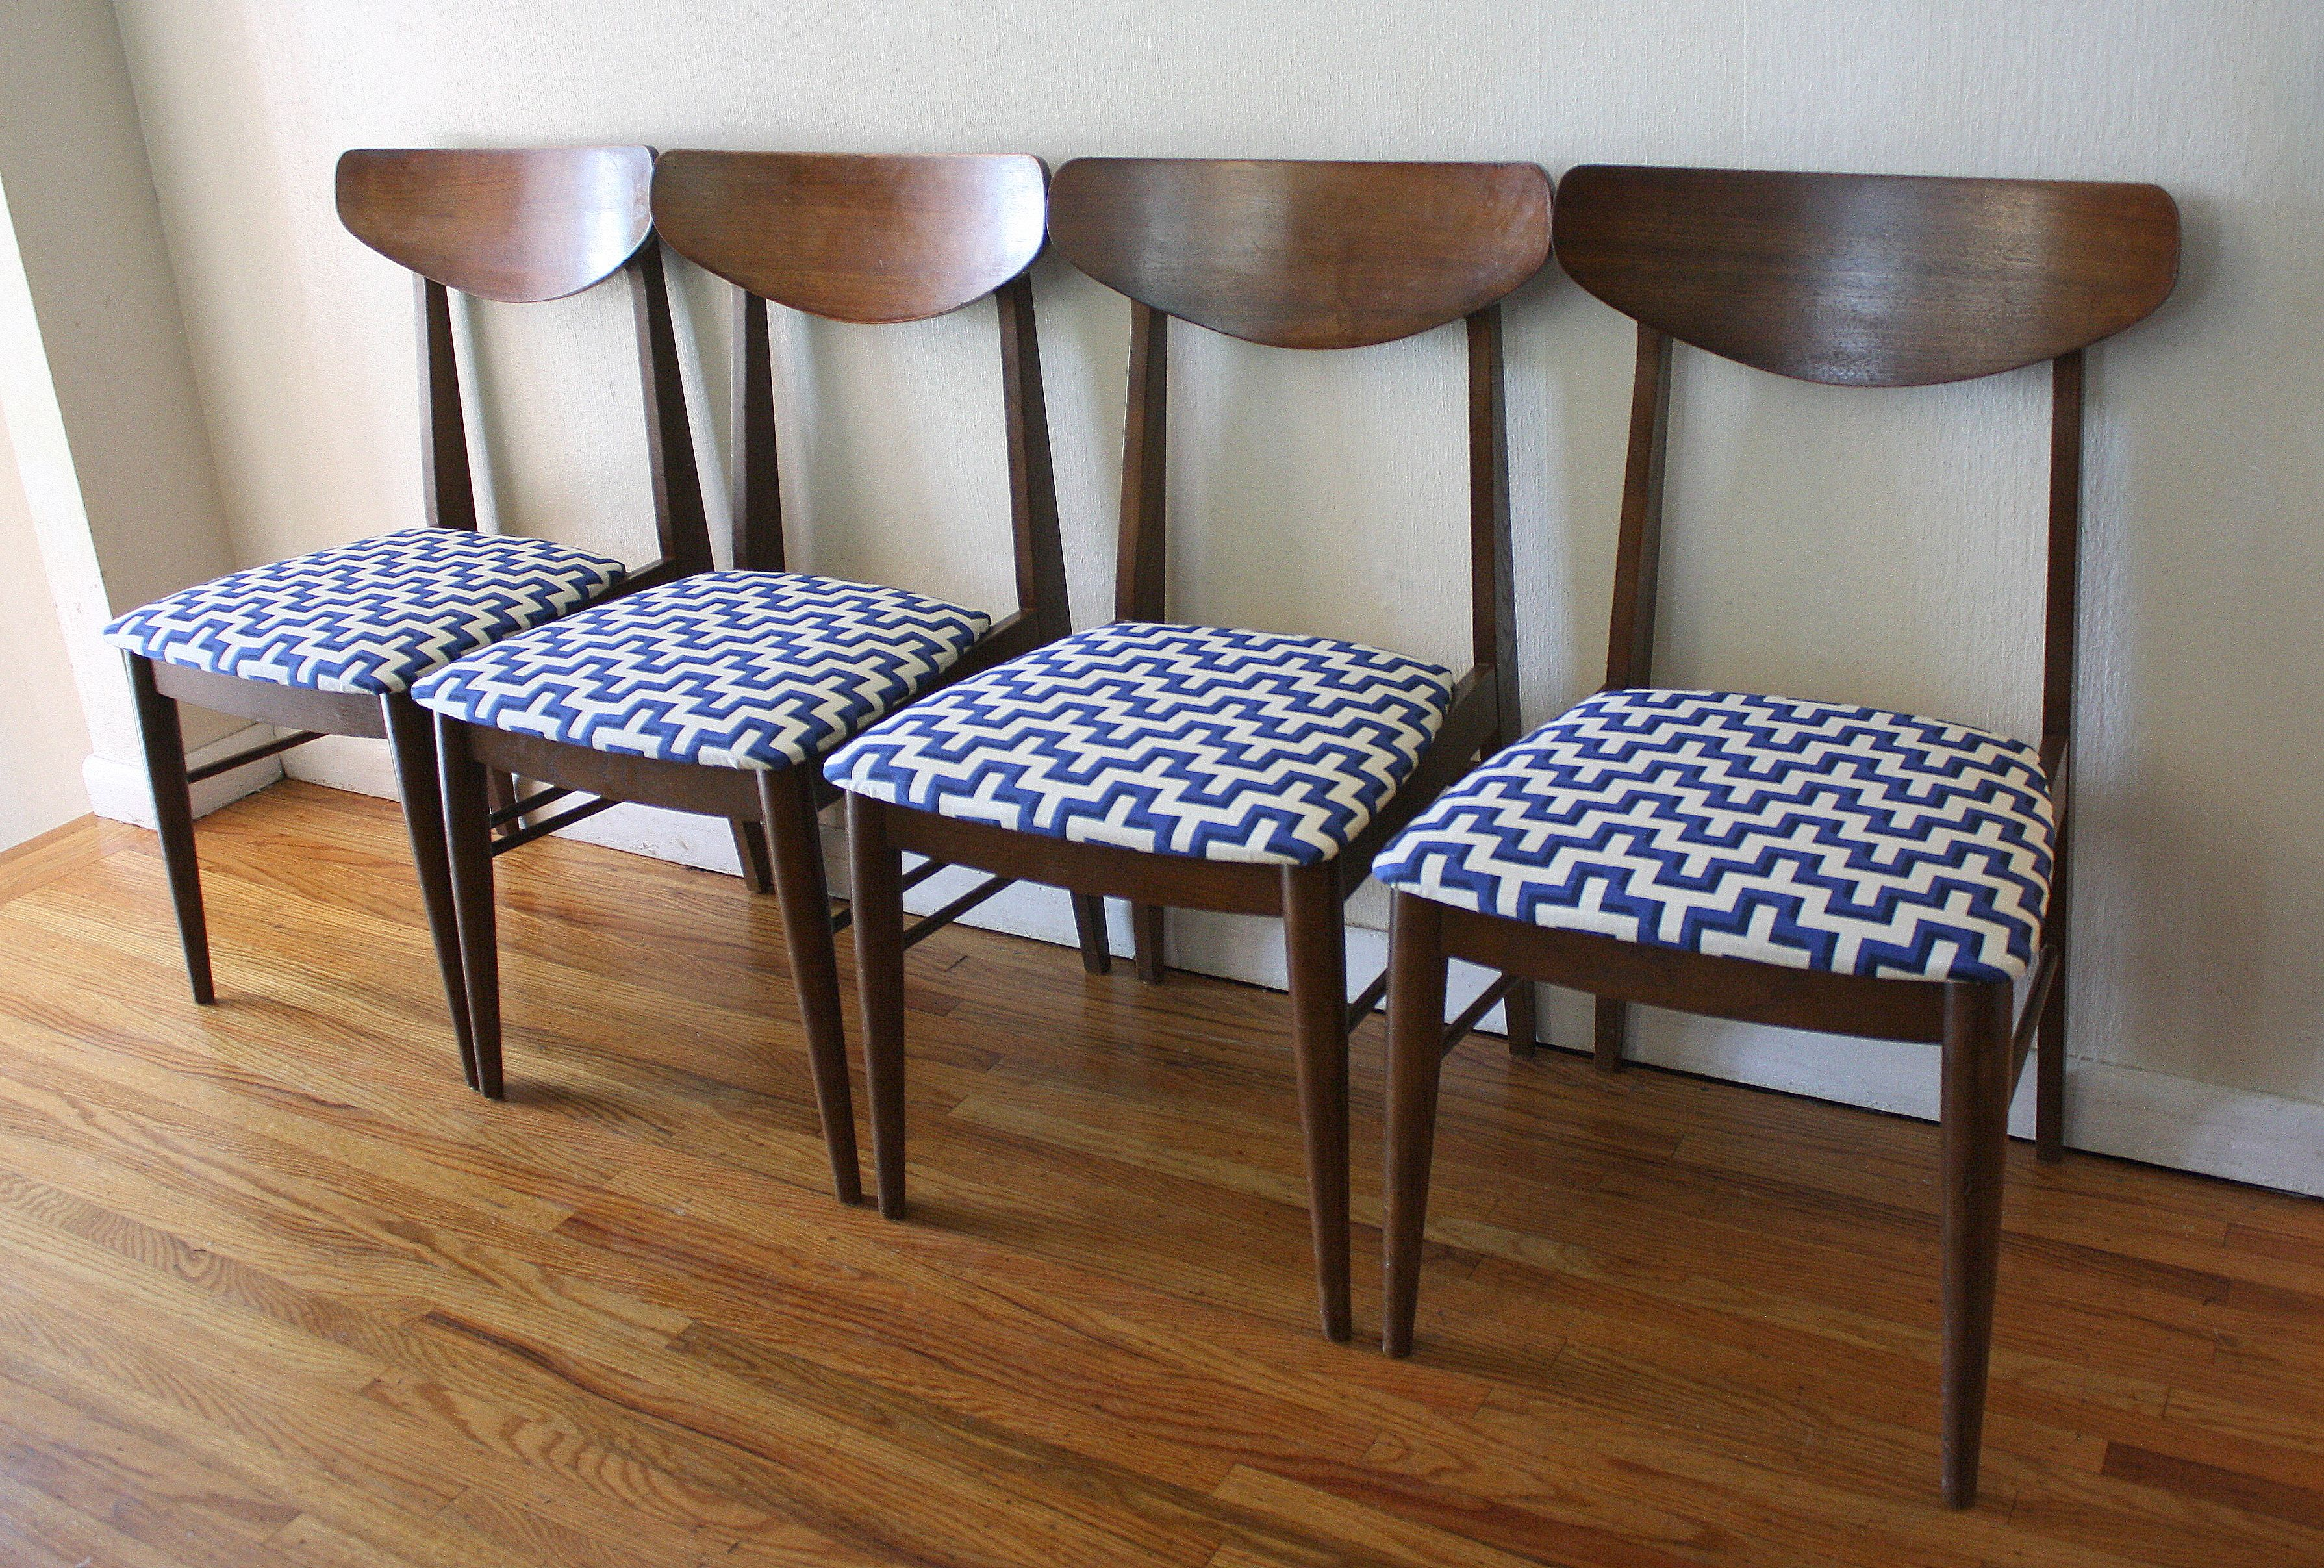 geometric pattern dining chairs - Google Search & geometric pattern dining chairs - Google Search | Kitchen Chairs ...